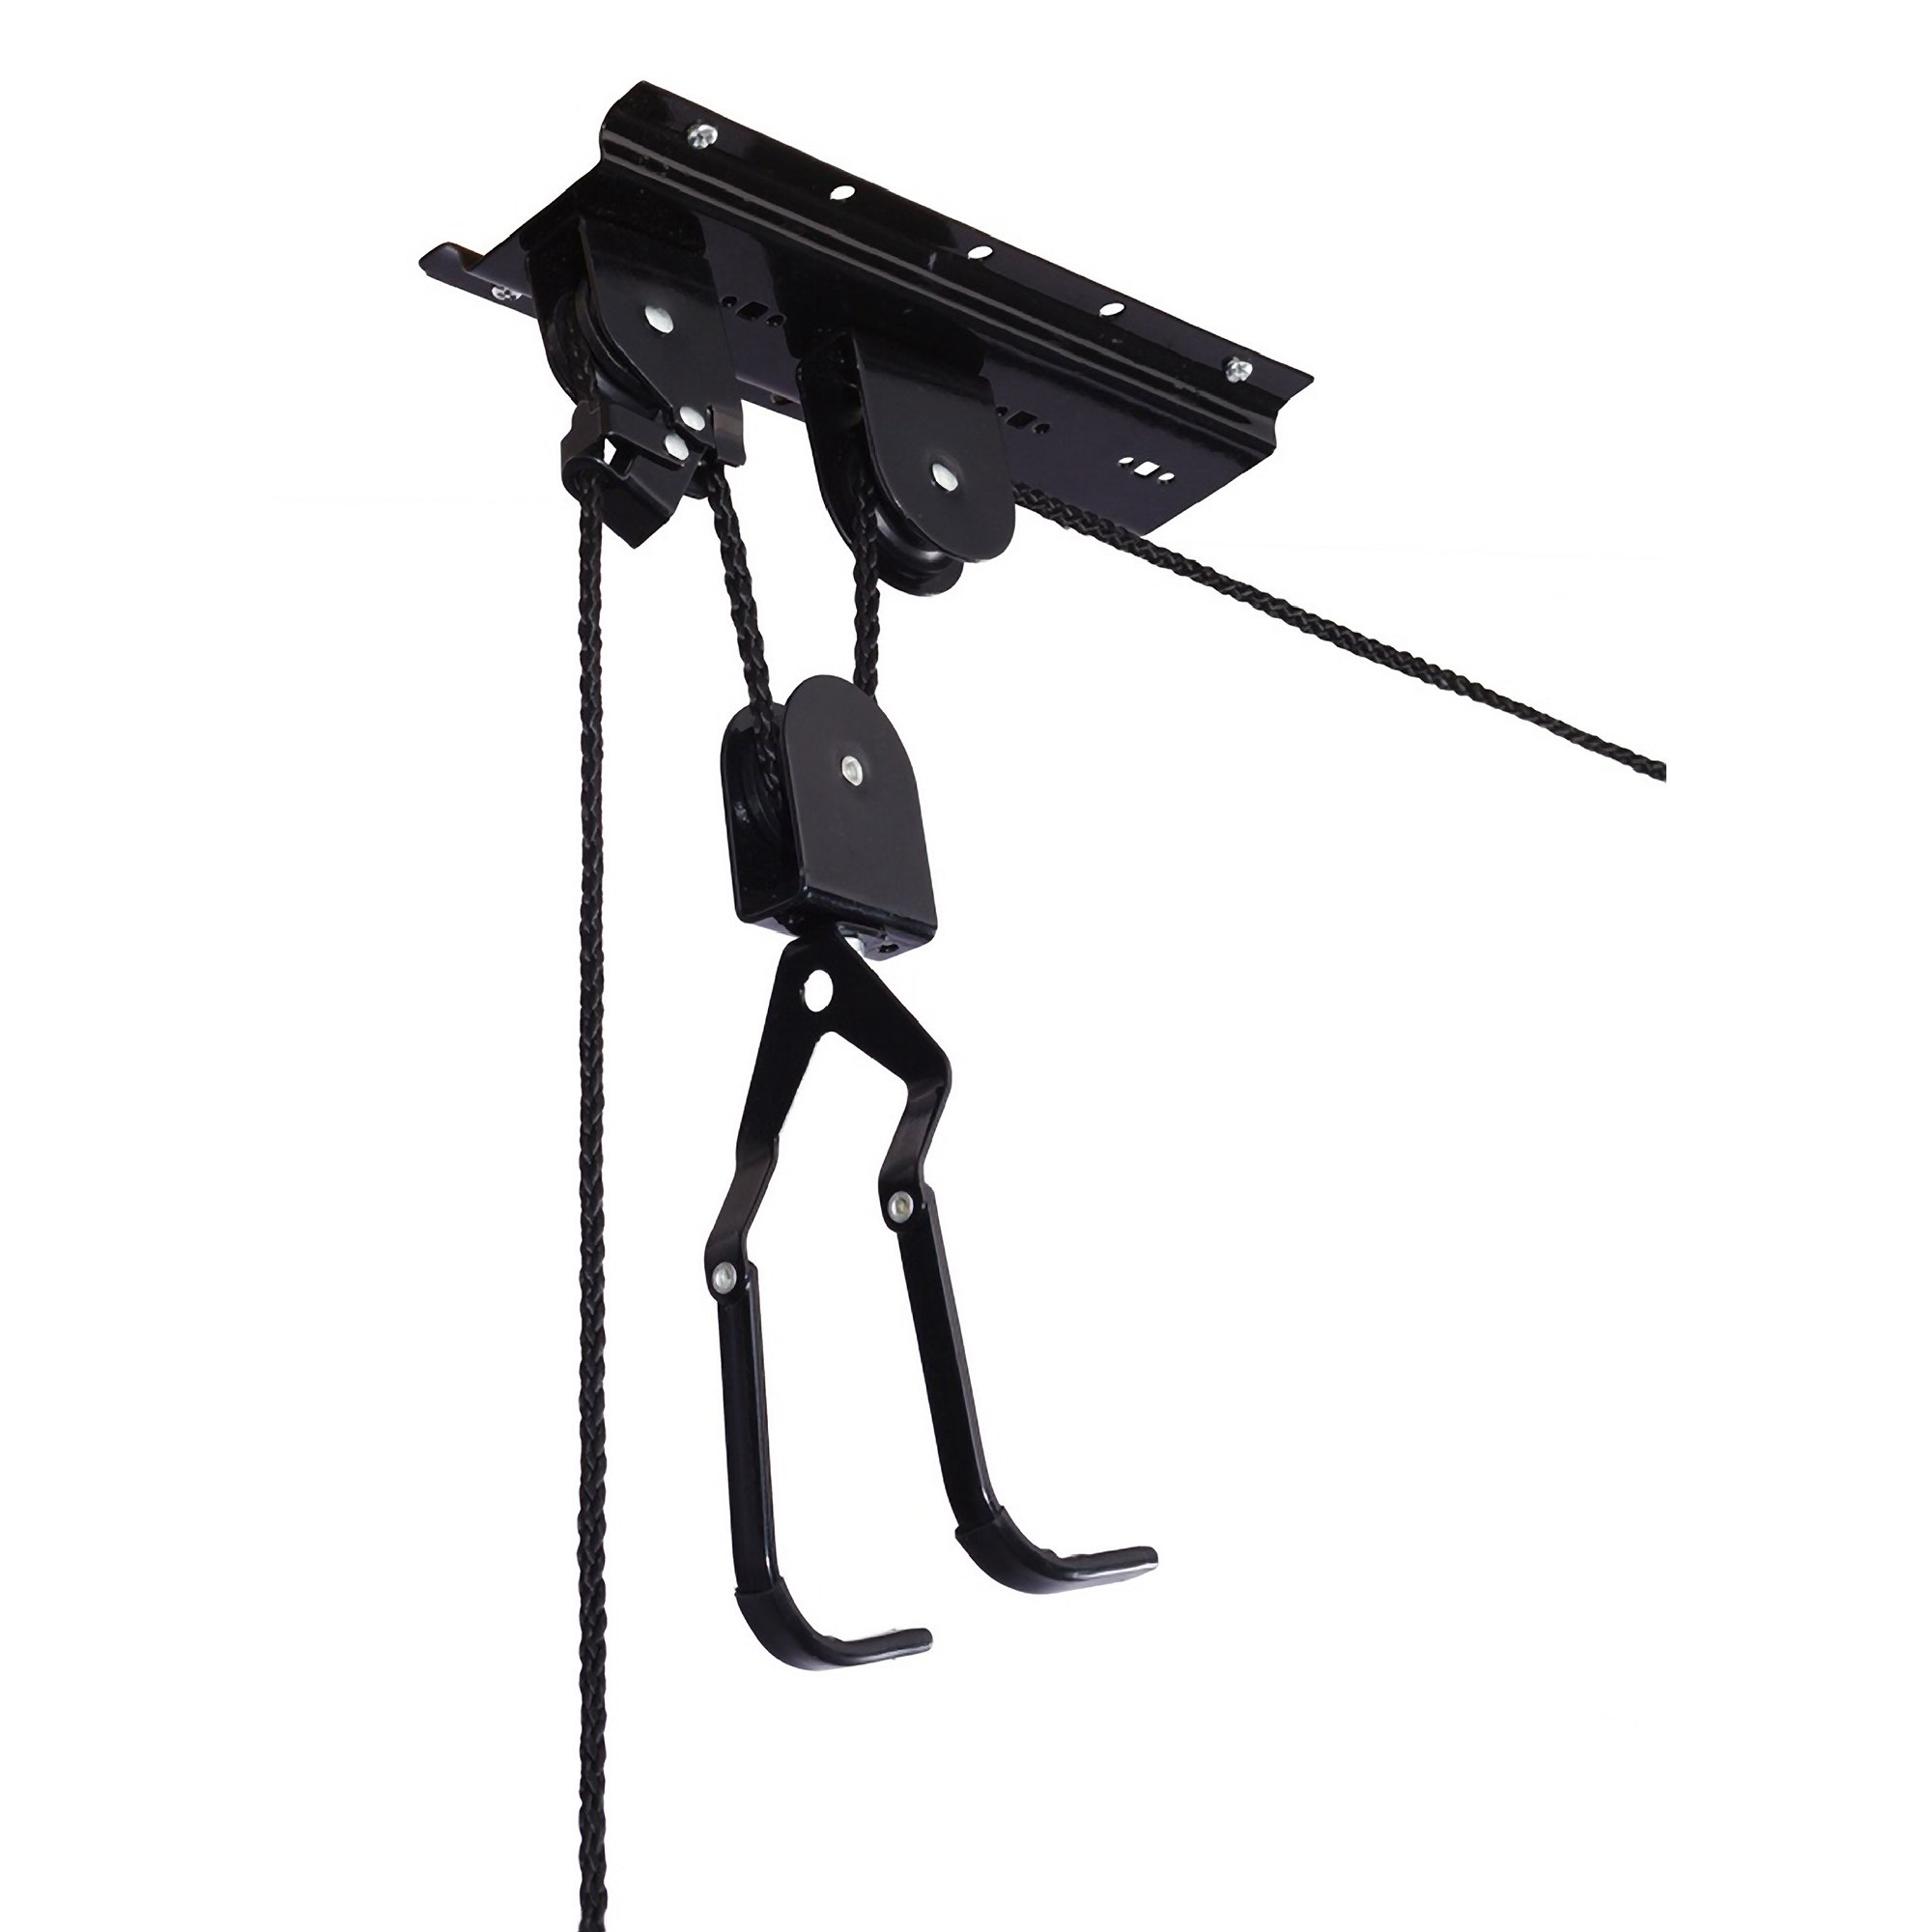 RAD Sportz Bicycle Hoist 4-Pack Quality Garage Storage Bike Lift with 100 lb Capacity Even Works as Ladder Lift Premium Quality by RAD Cycle Products (Image #9)